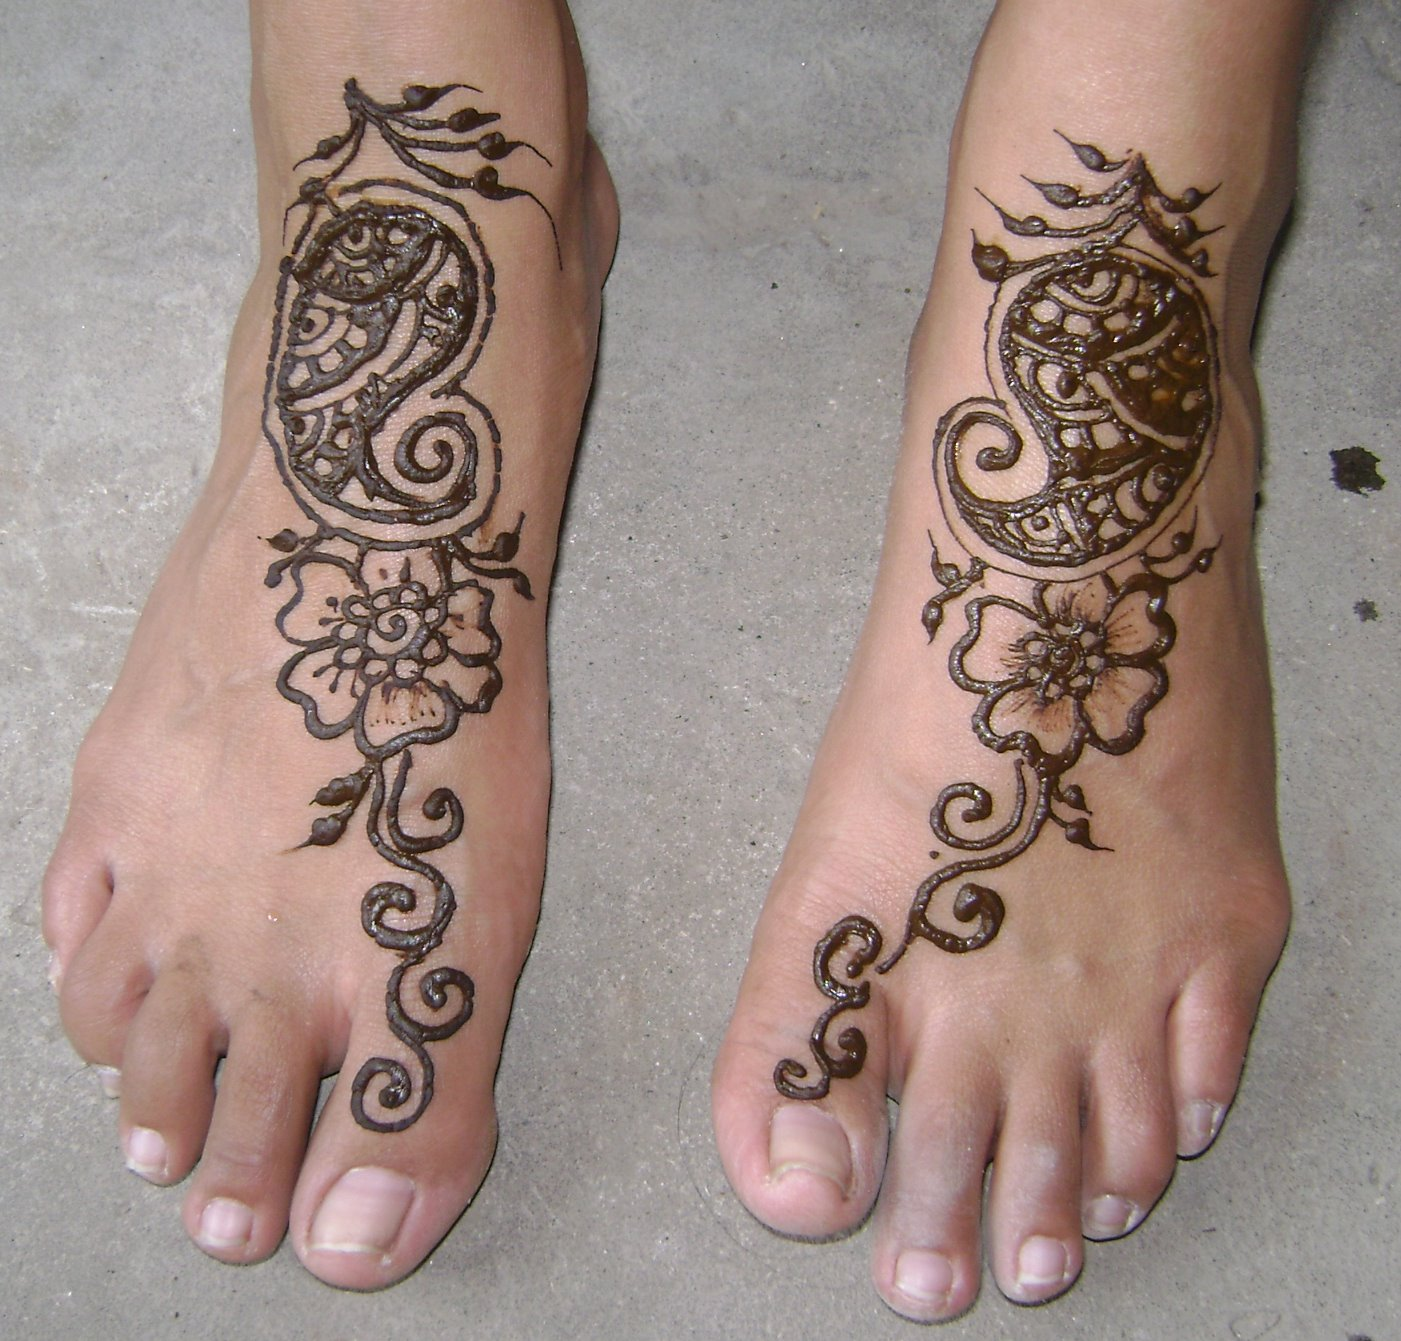 Simple Henna Foot Tattoo Designs: Fashion Celebrity: Top 22 Easy To Copy And Make Mehndi